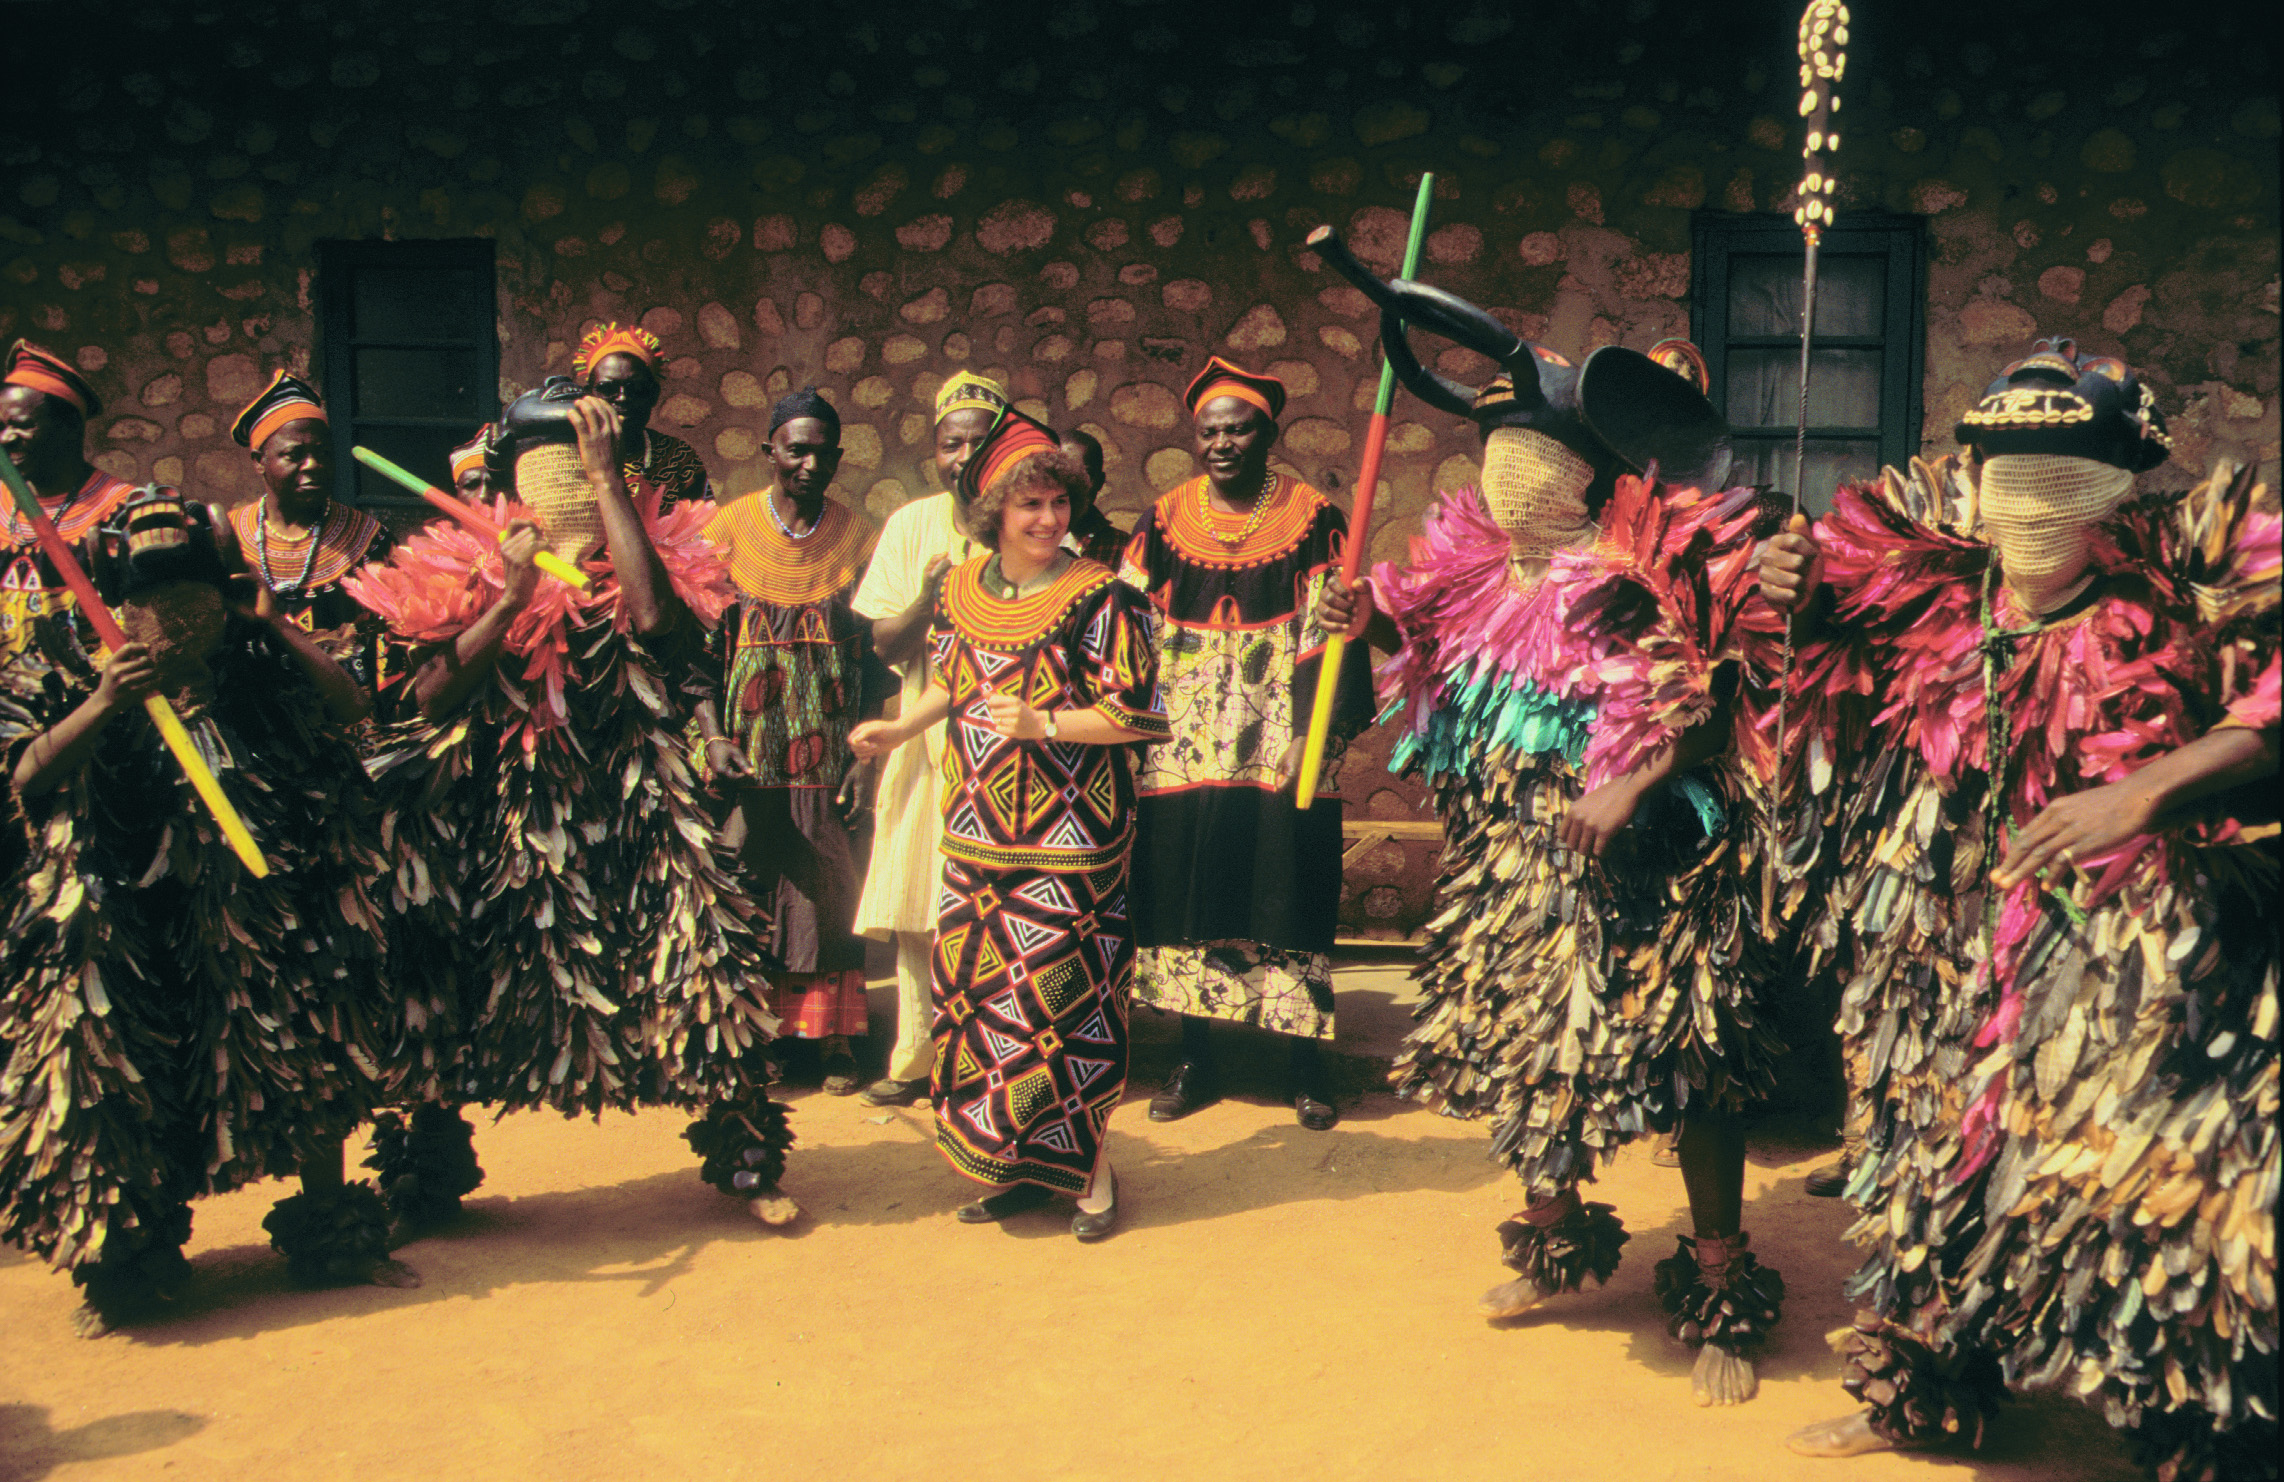 Cameroon 1995 (Photo by Tom Haskell)